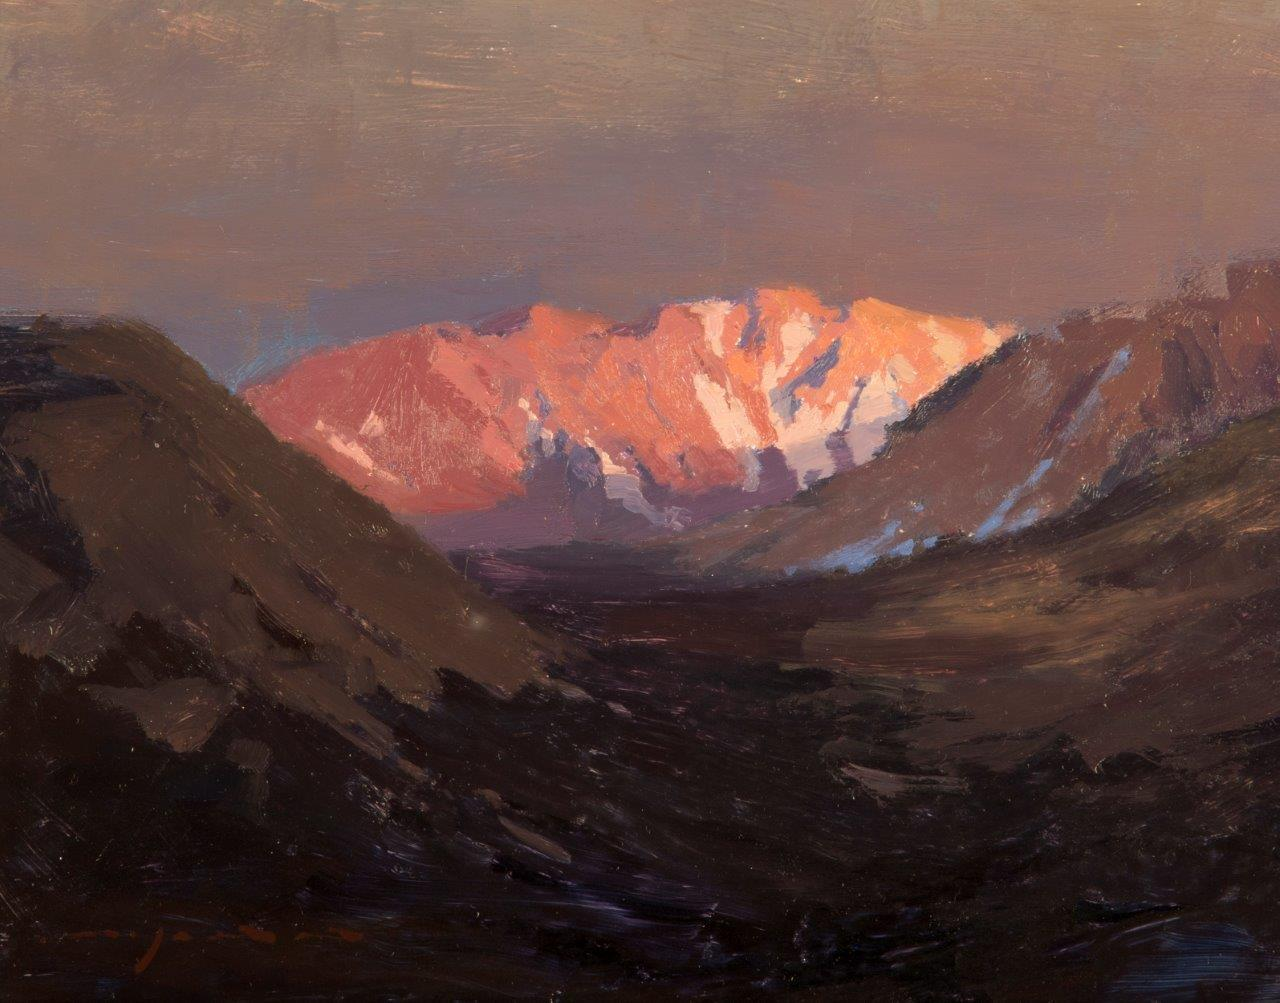 The Evening Alpenglow - 8 x 10 inches - Oil on Panel - 6/2016